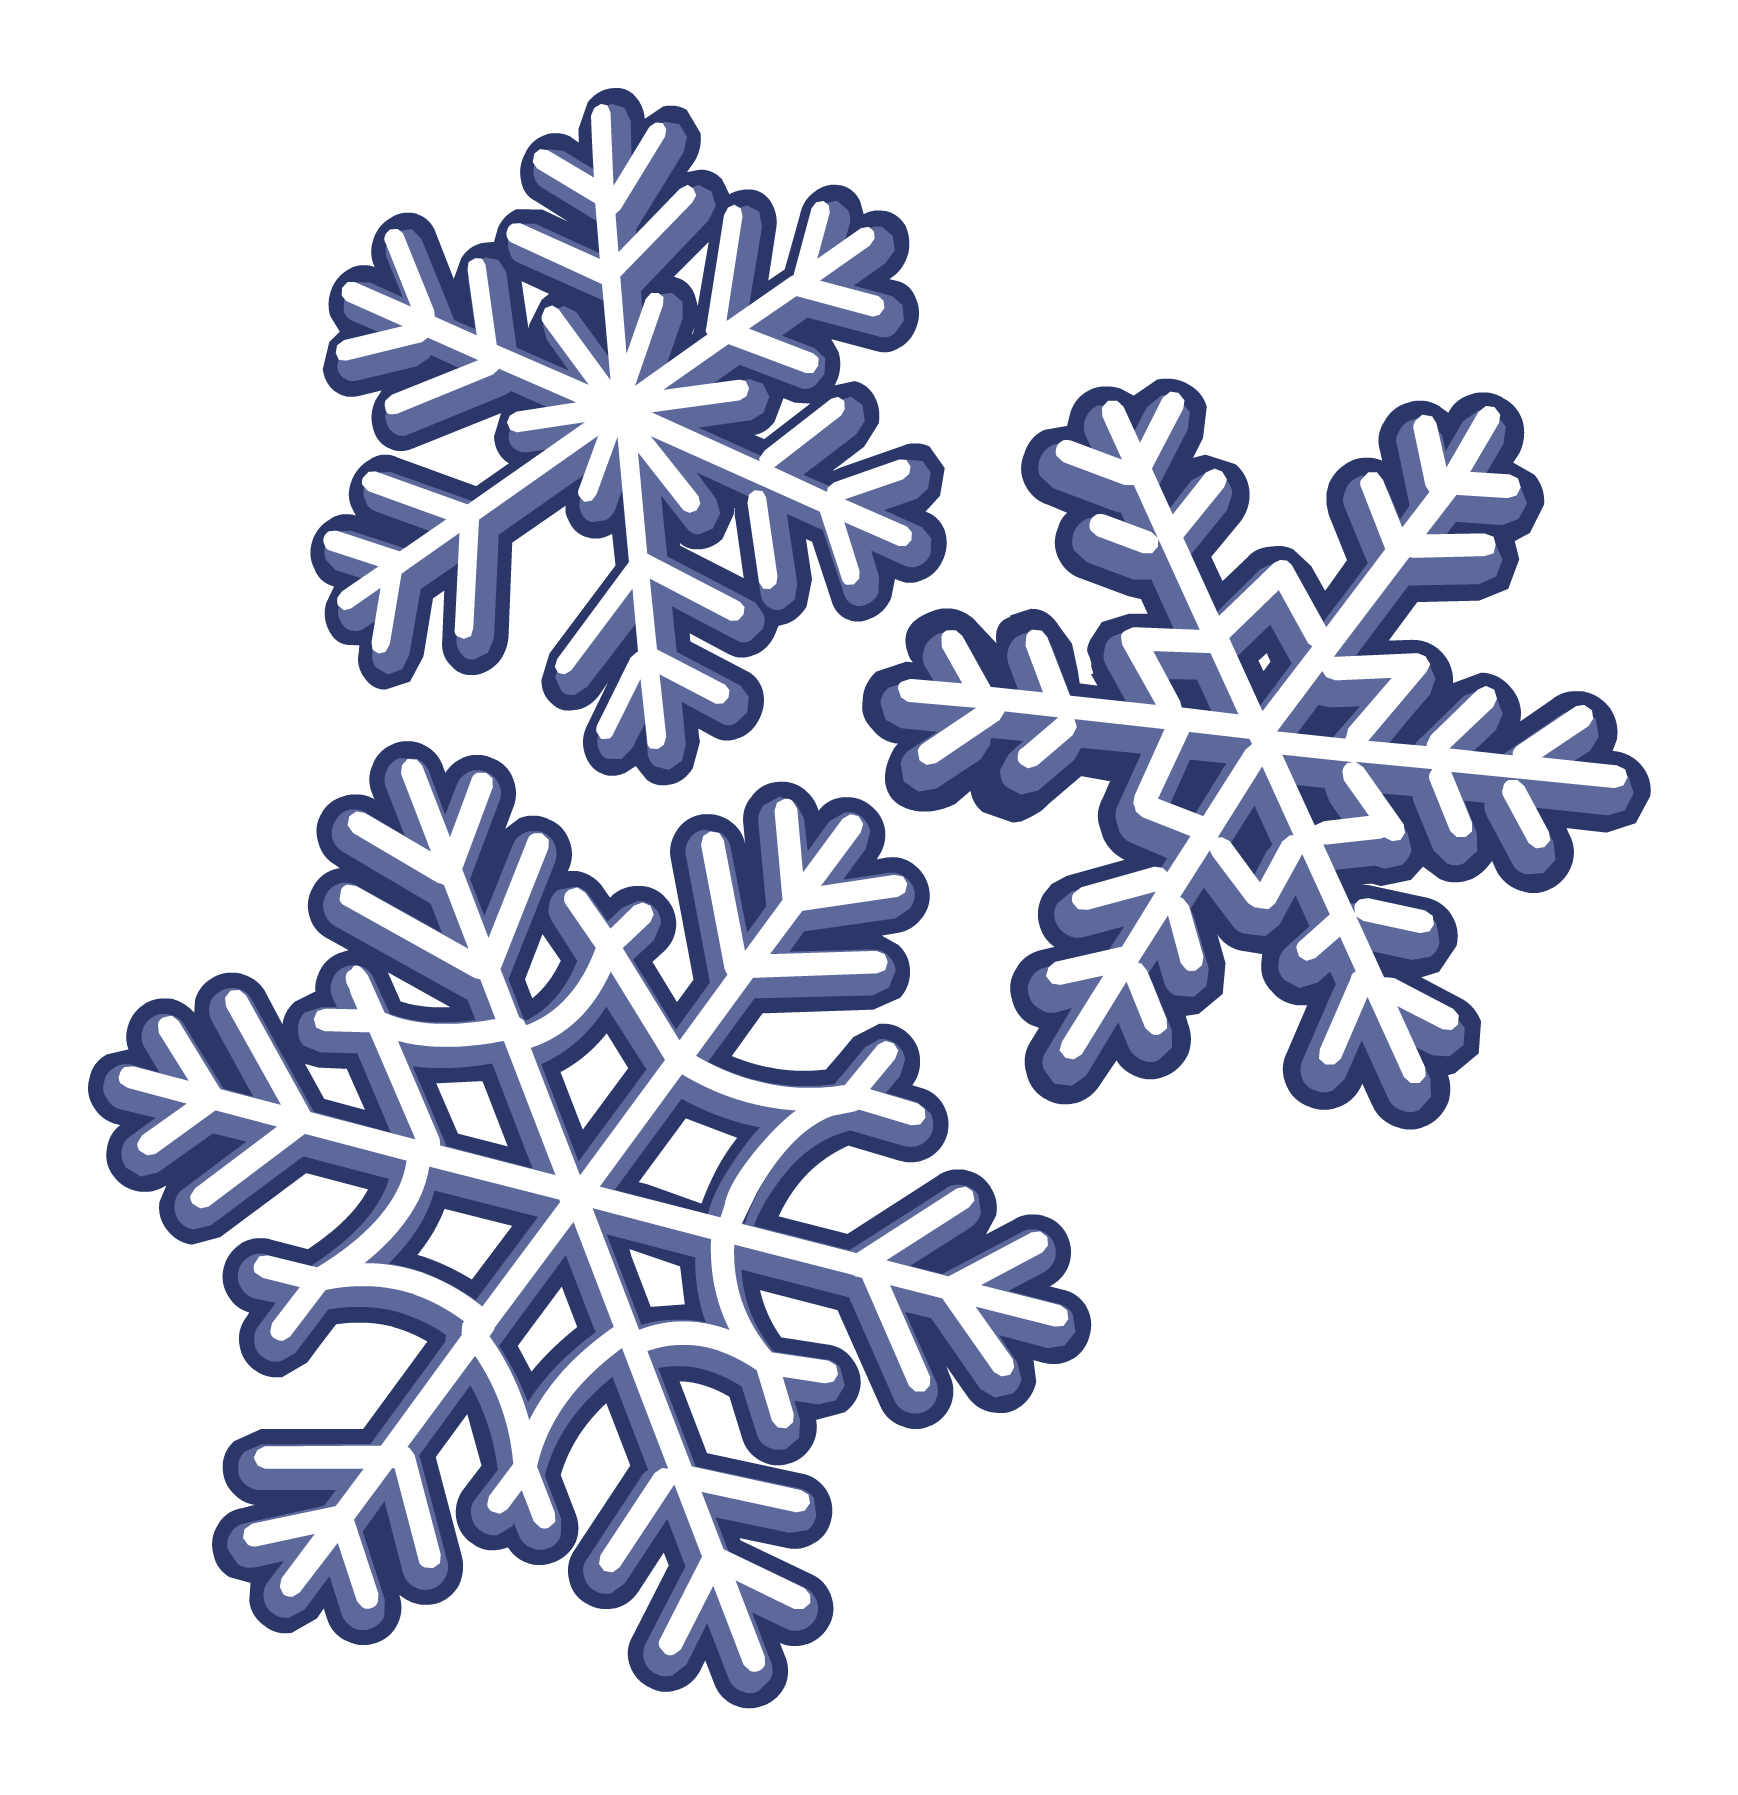 Snowflakes Png image #41281